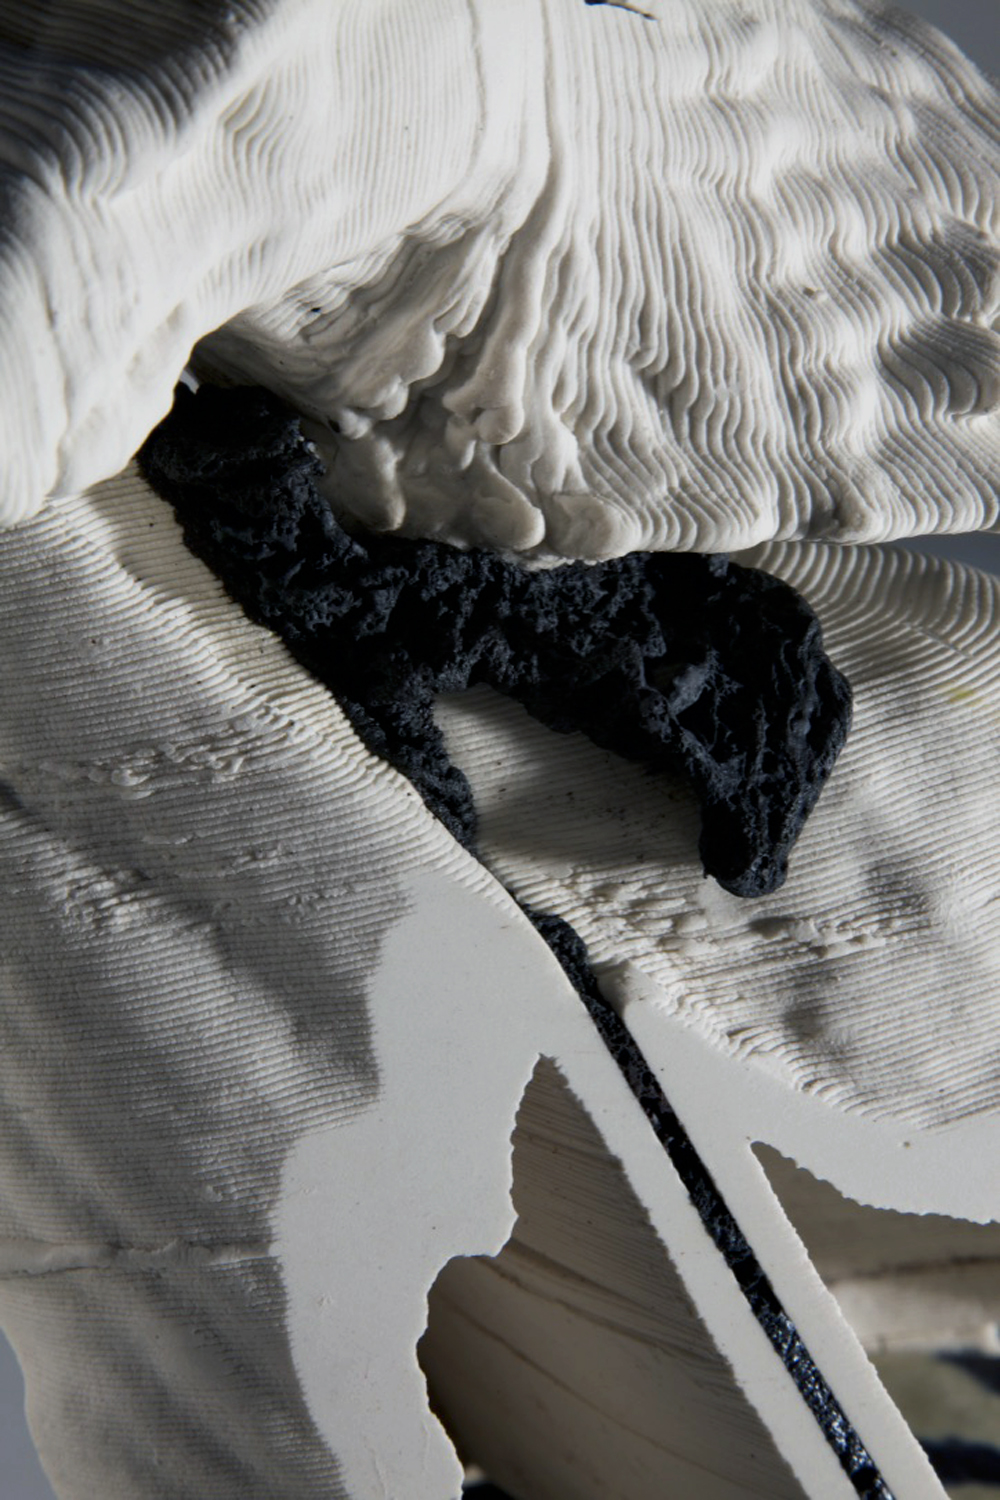 State Actor Detail  2019  3d printed porcelain, steel  16.5in. h x 11in. w x 11in. d